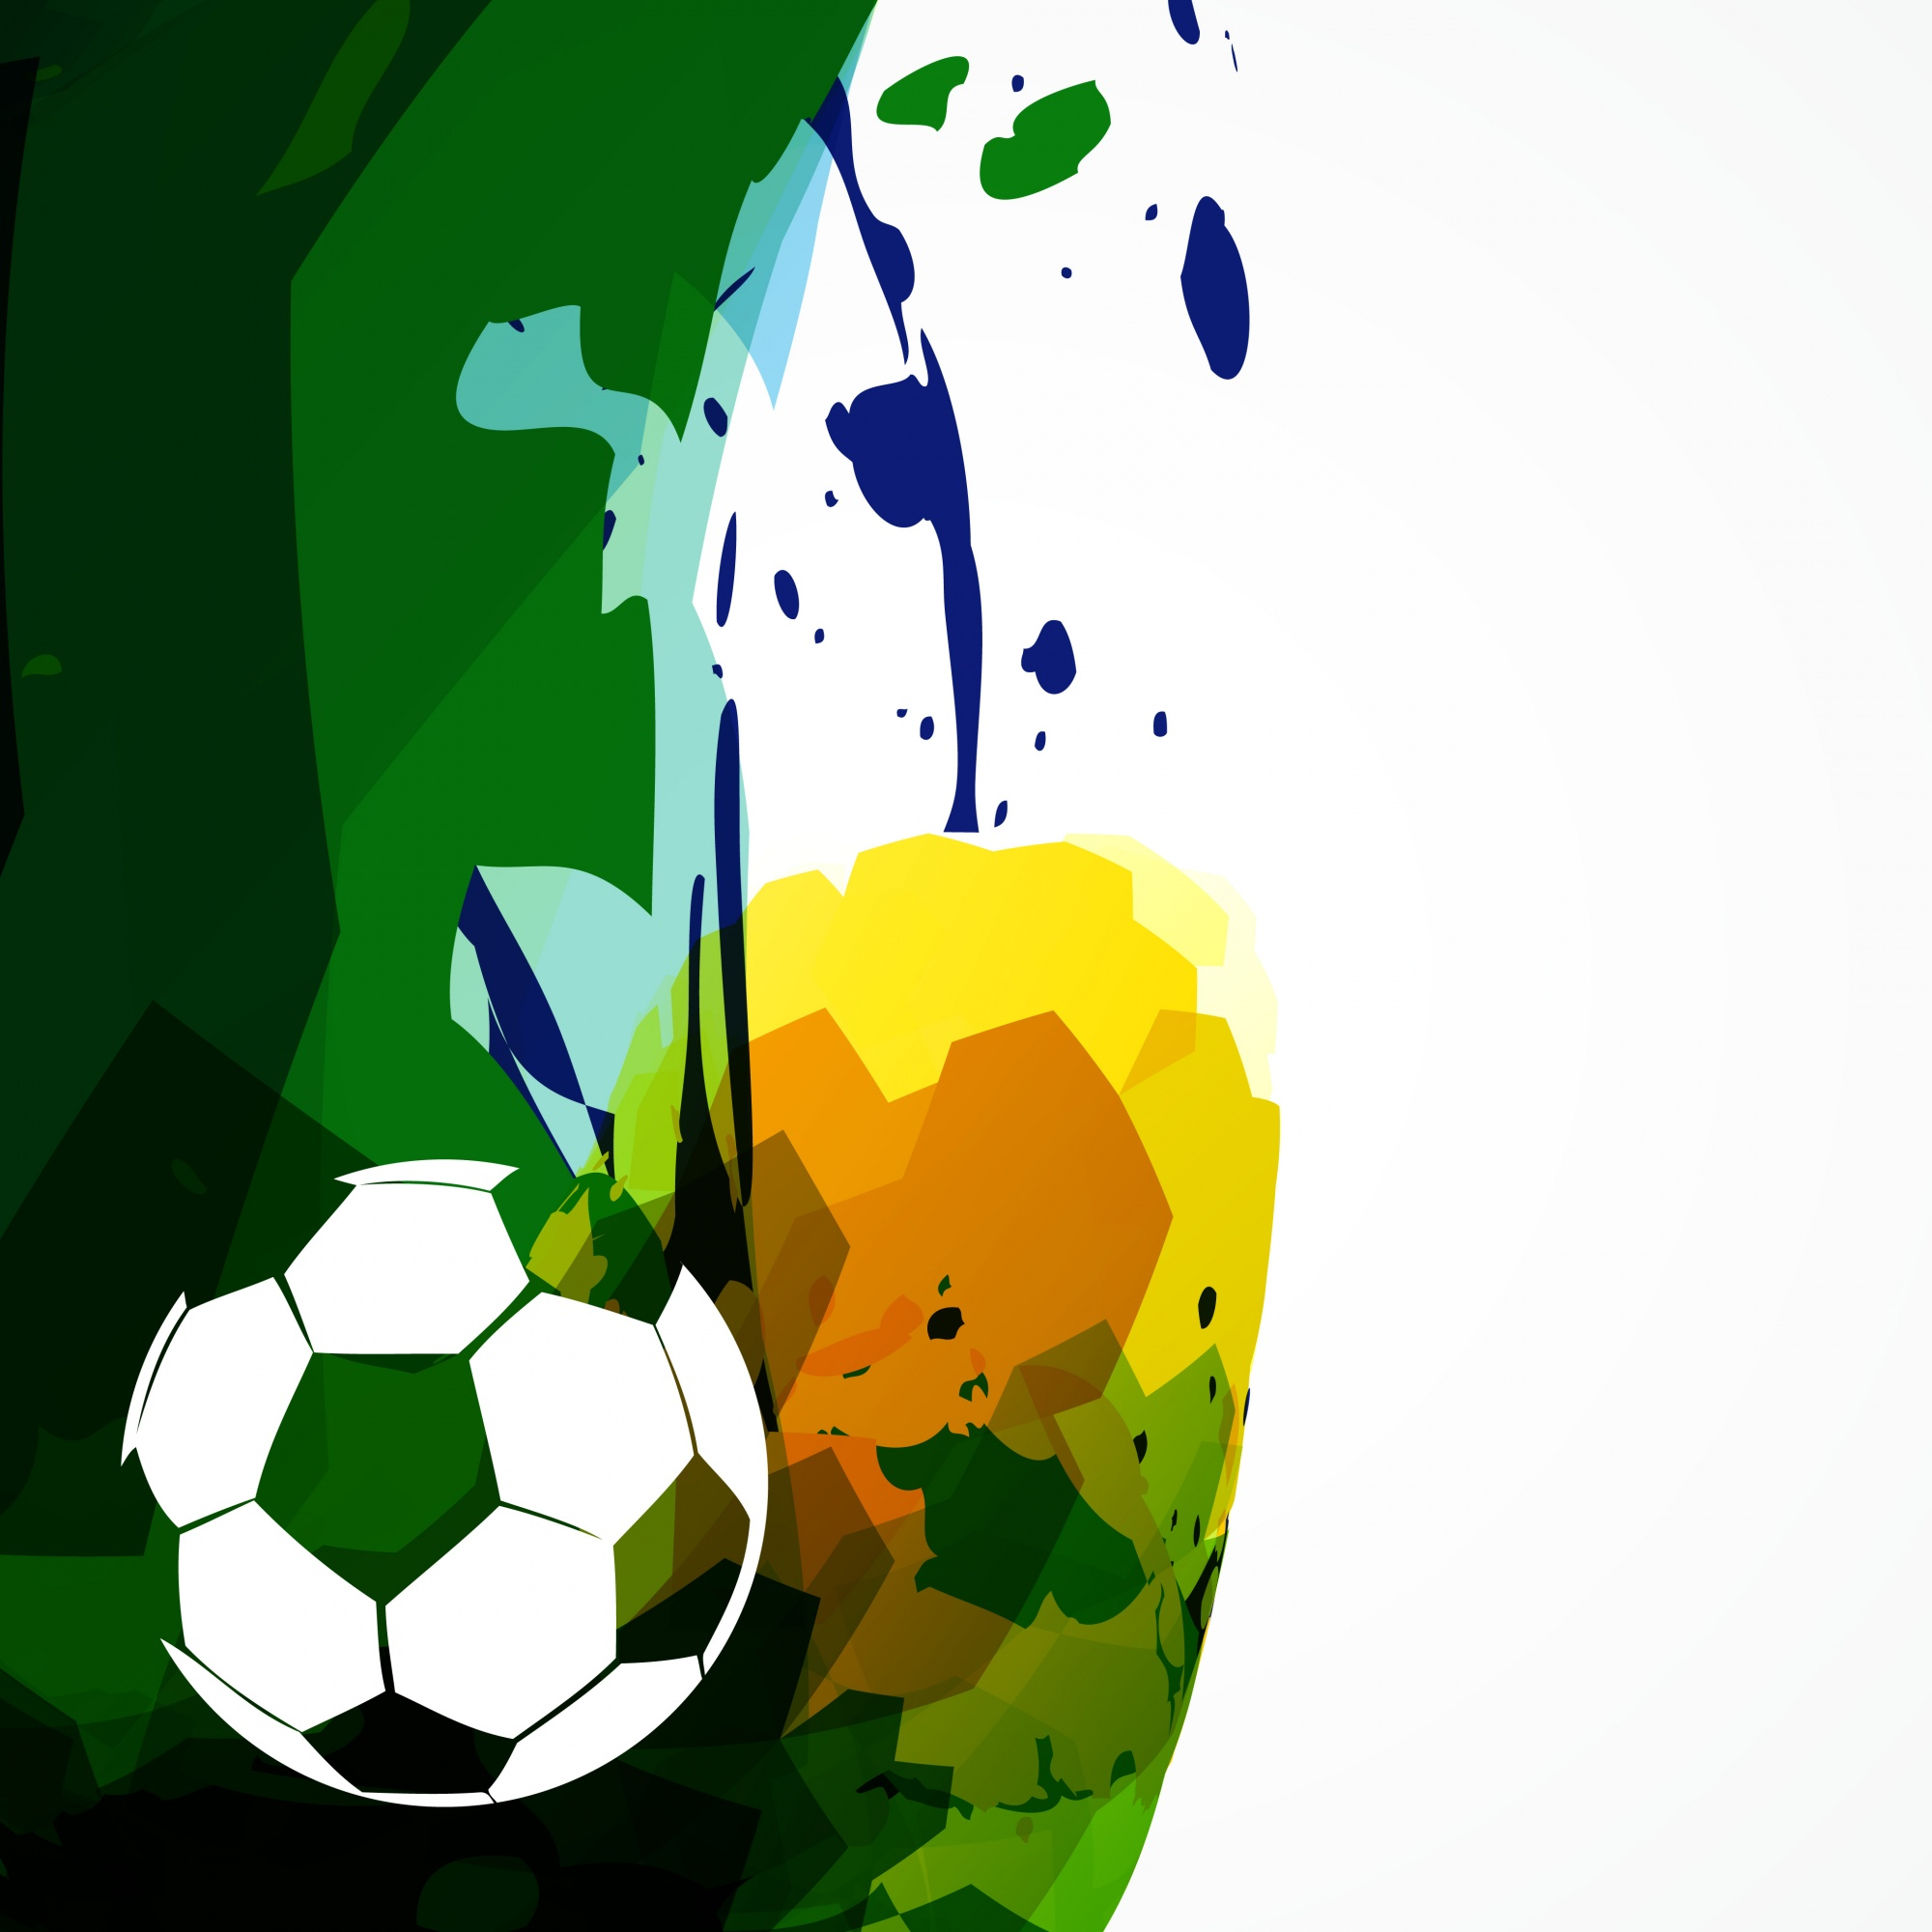 Abstract colorful soccer design